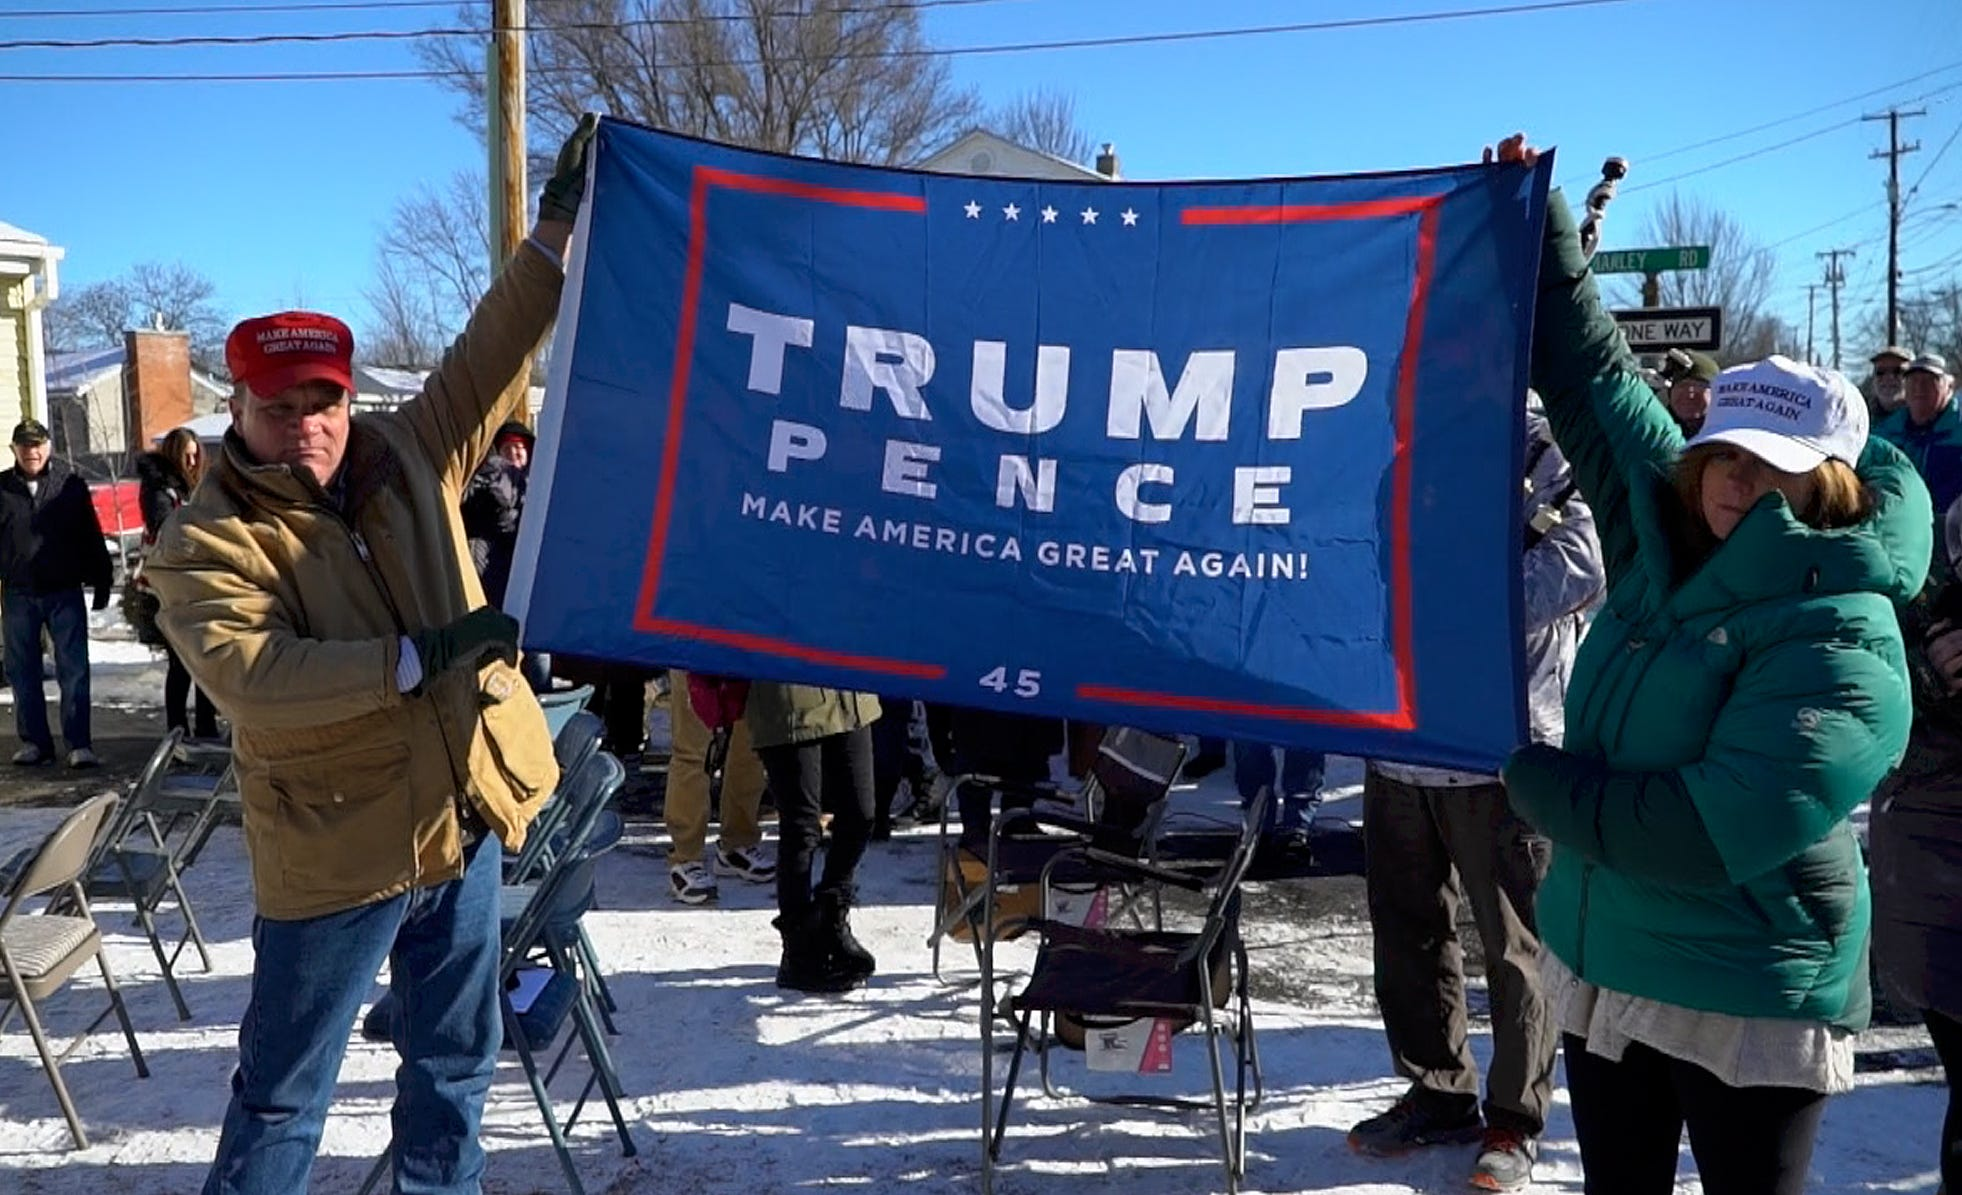 'Trump 2020' flag rises again in Vermont after previous one was vandalized